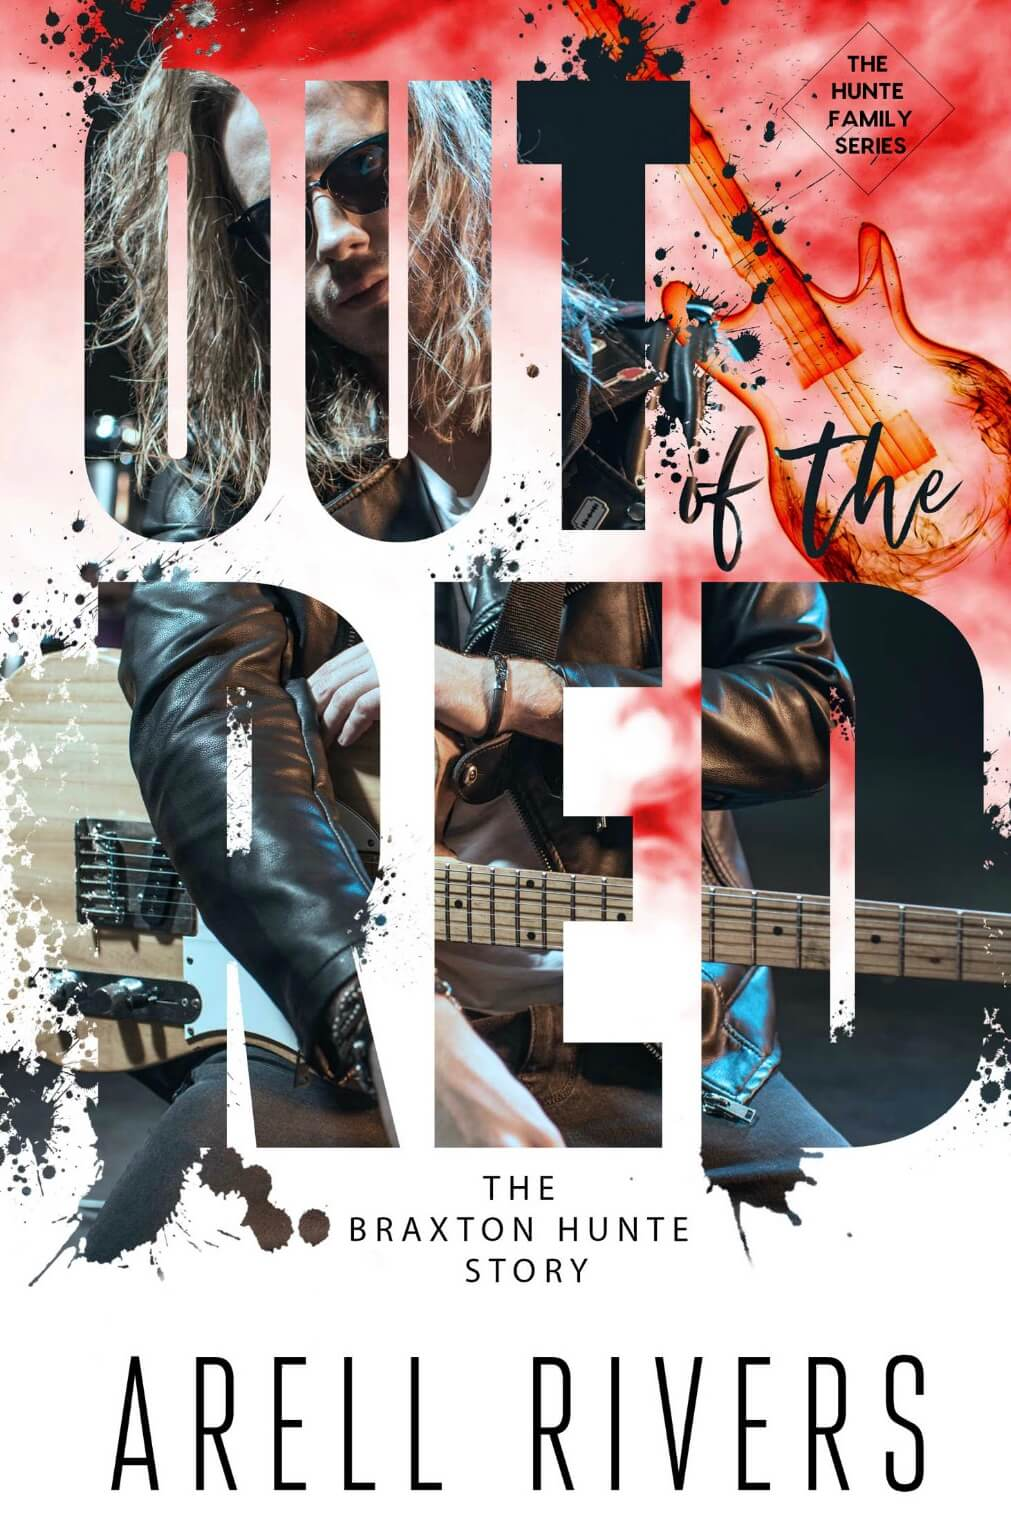 Release Day * Out of the Red (Hunte family series book 1) by  Arell Rivers * Blog Tour * Book Review * Giveaway * Excerpt